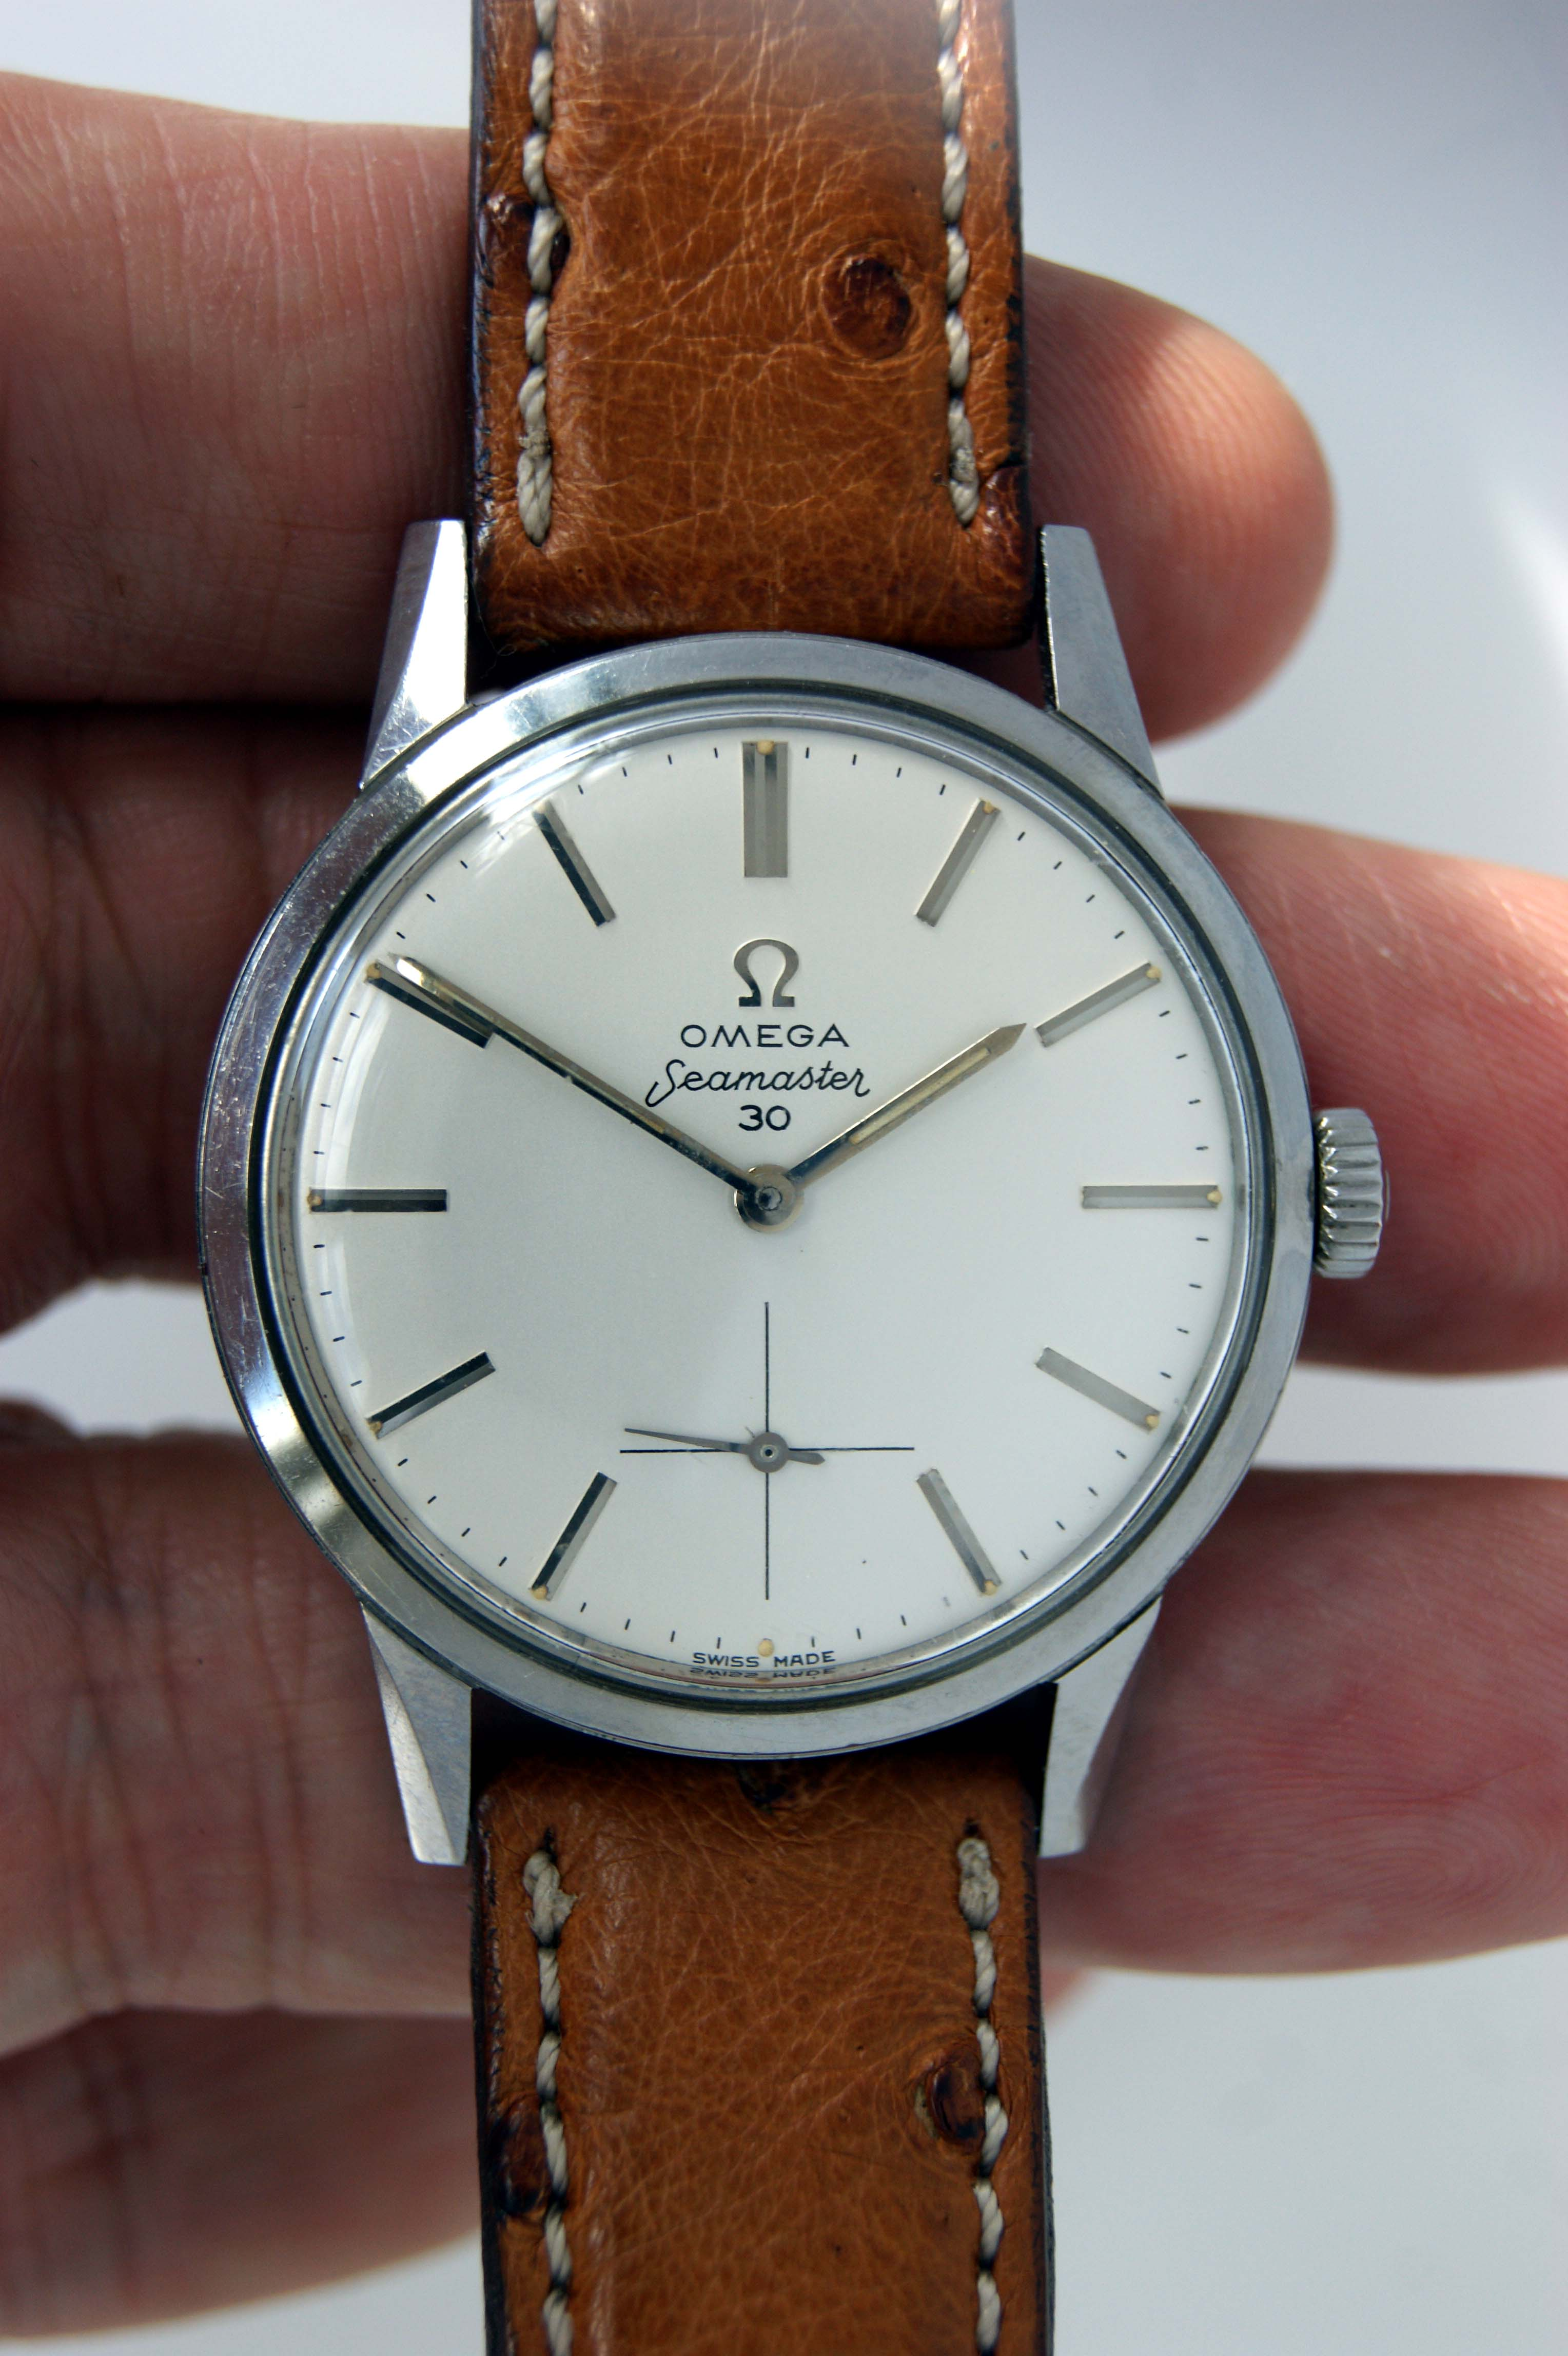 Swiss Watch 1962 Seamaster 30 New Old Stock Unsued Condition Watch